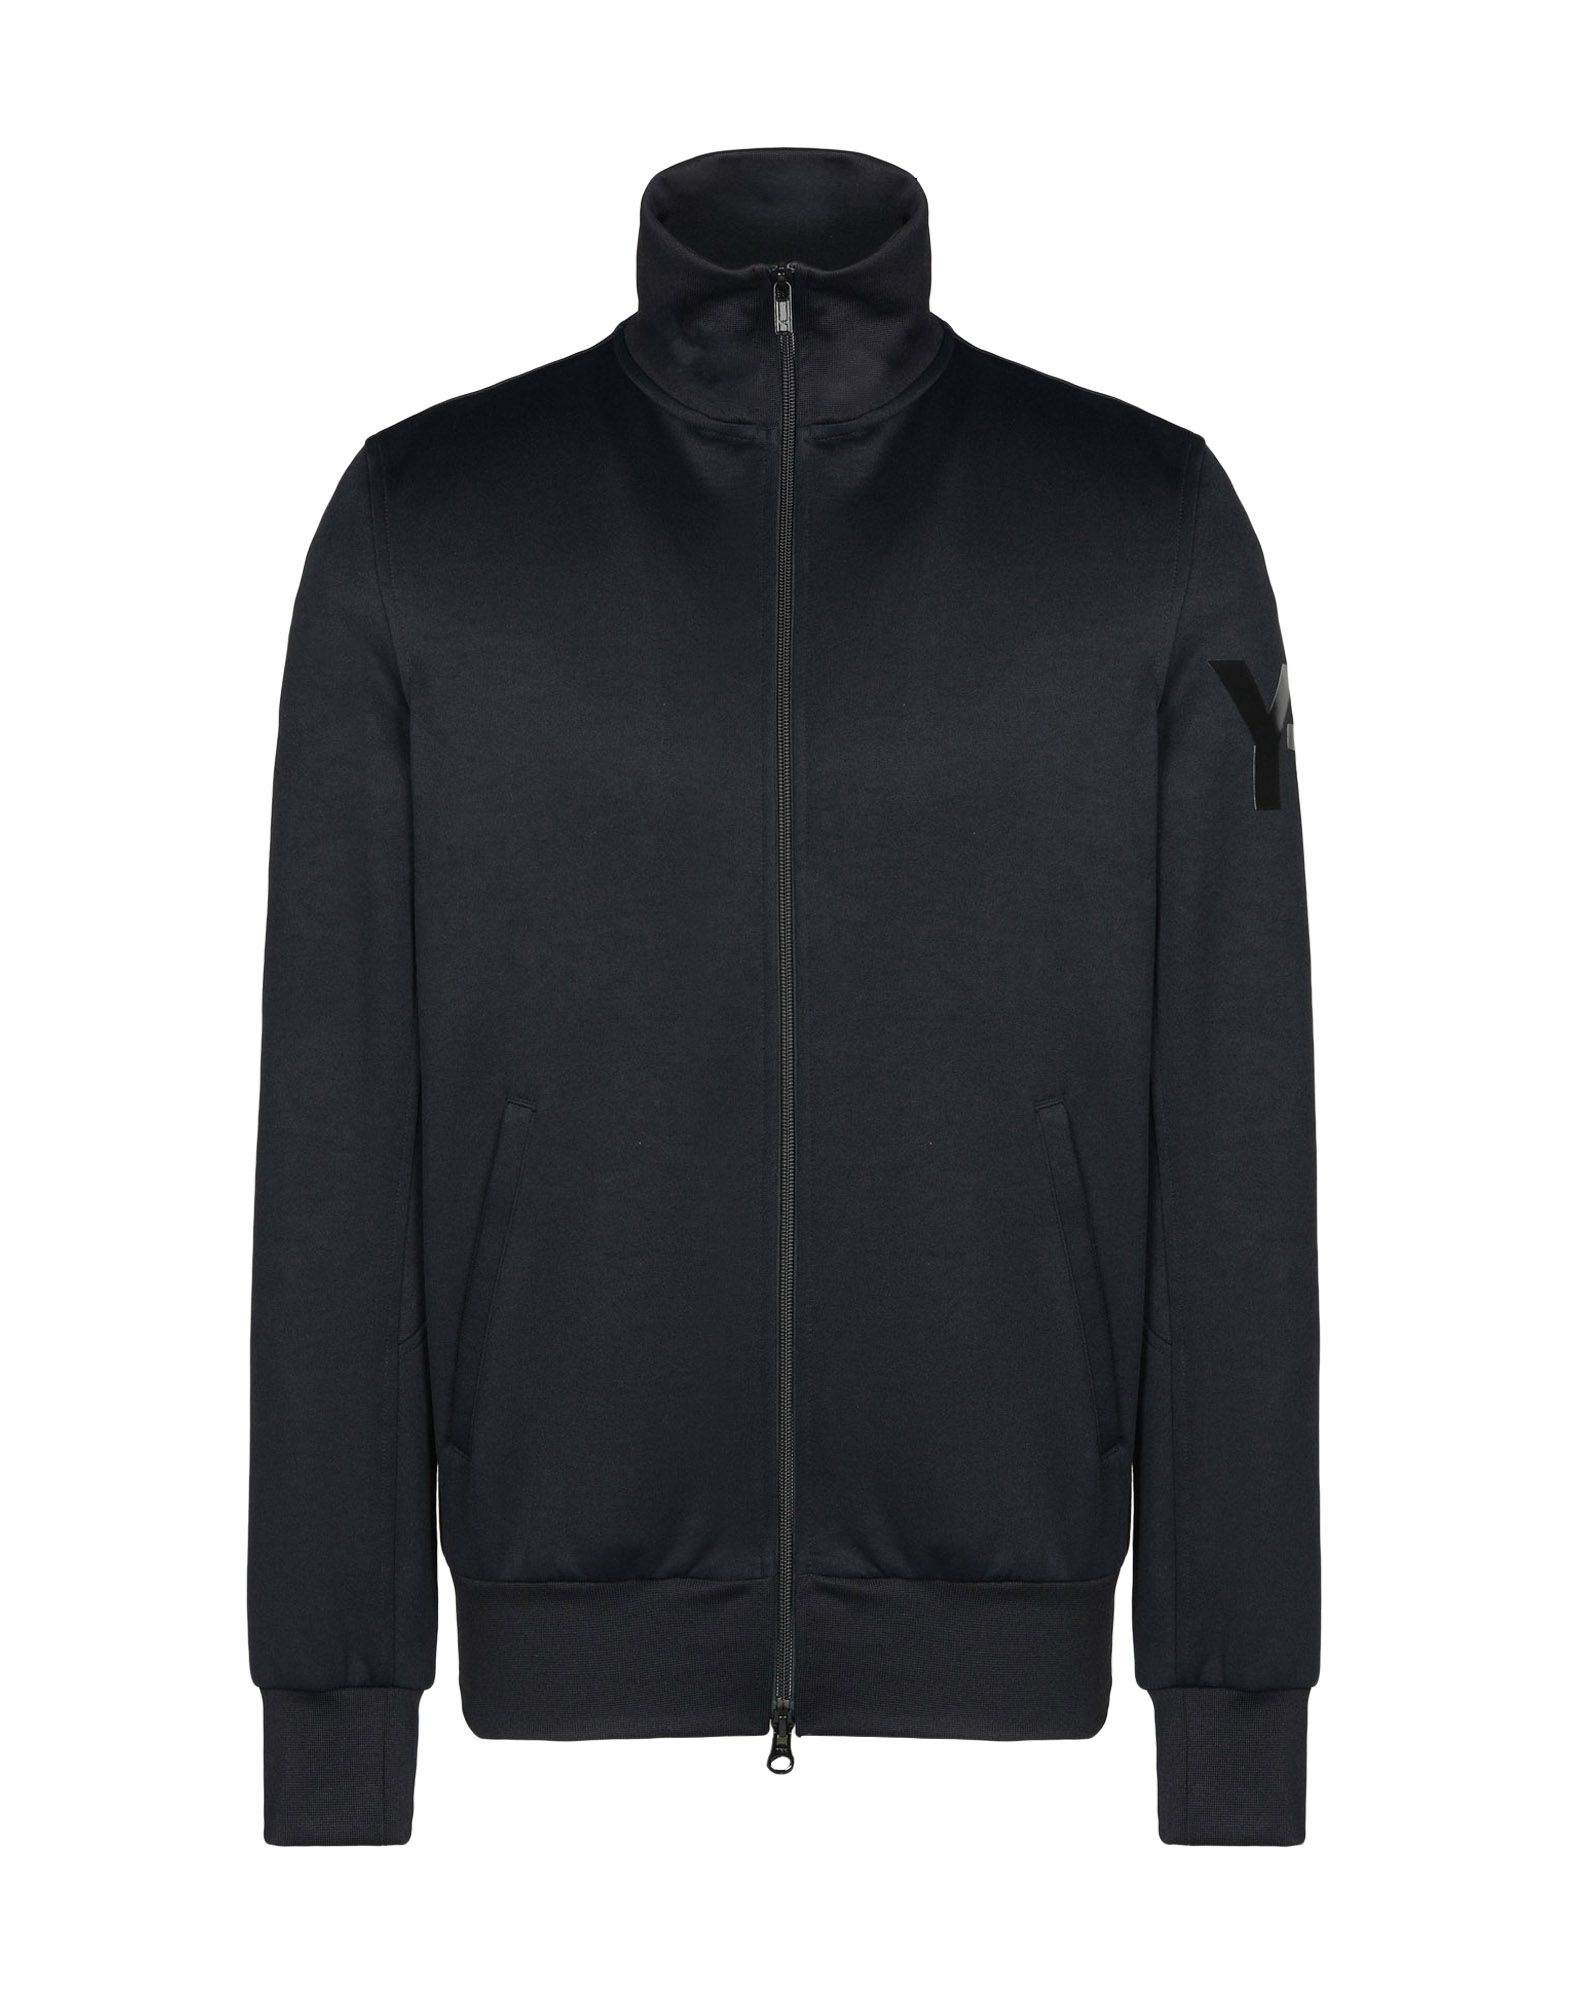 Y 3 Classic Track Top Track Tops for Men | Adidas Y-3 Official Store